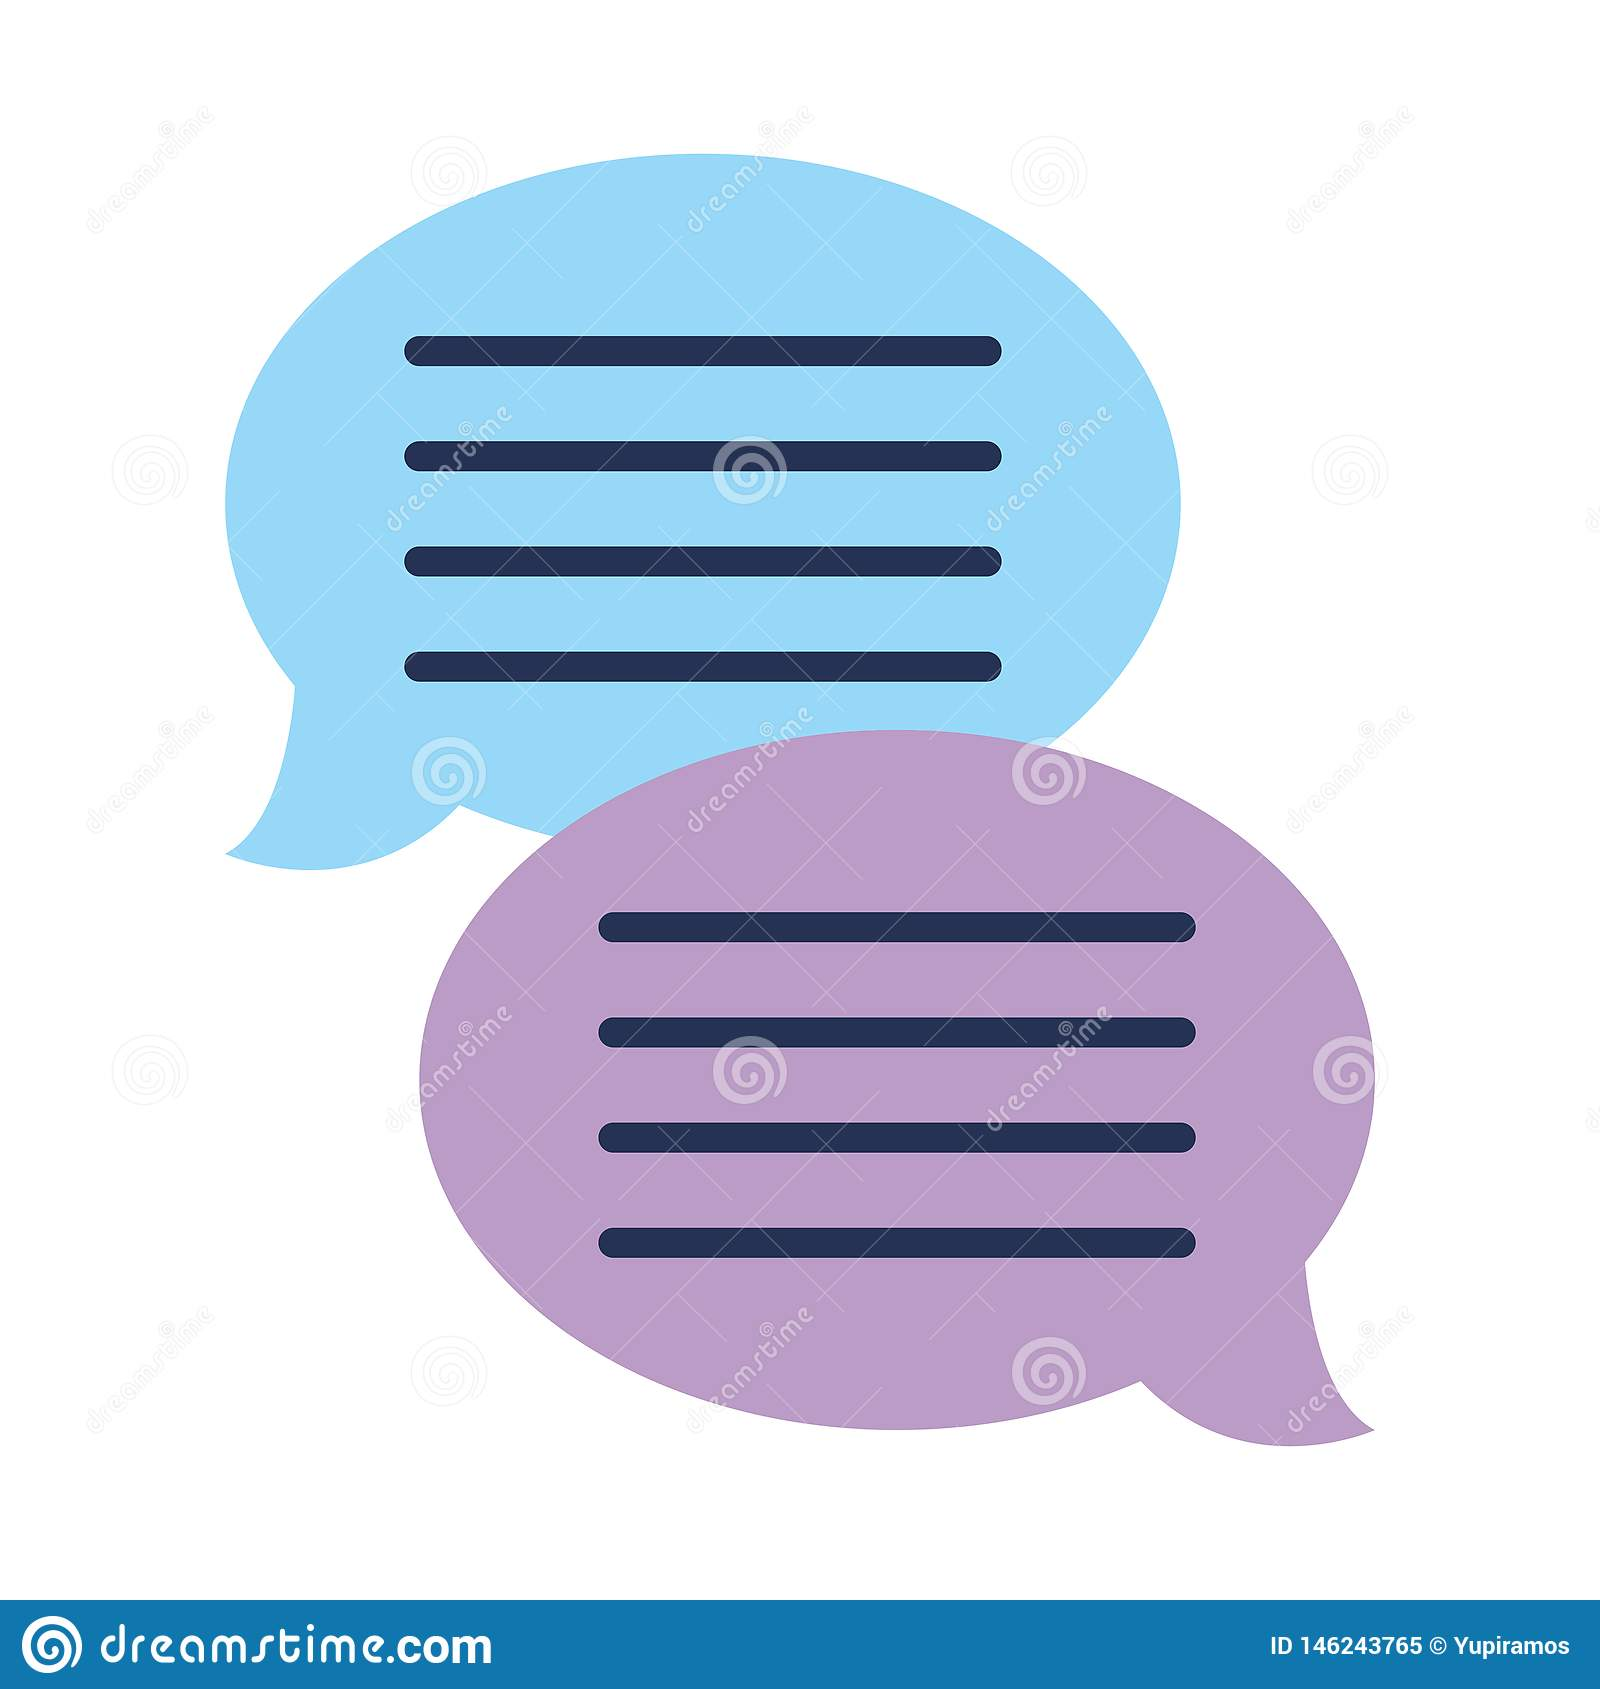 Text bubble chat app stock vector  Illustration of blue